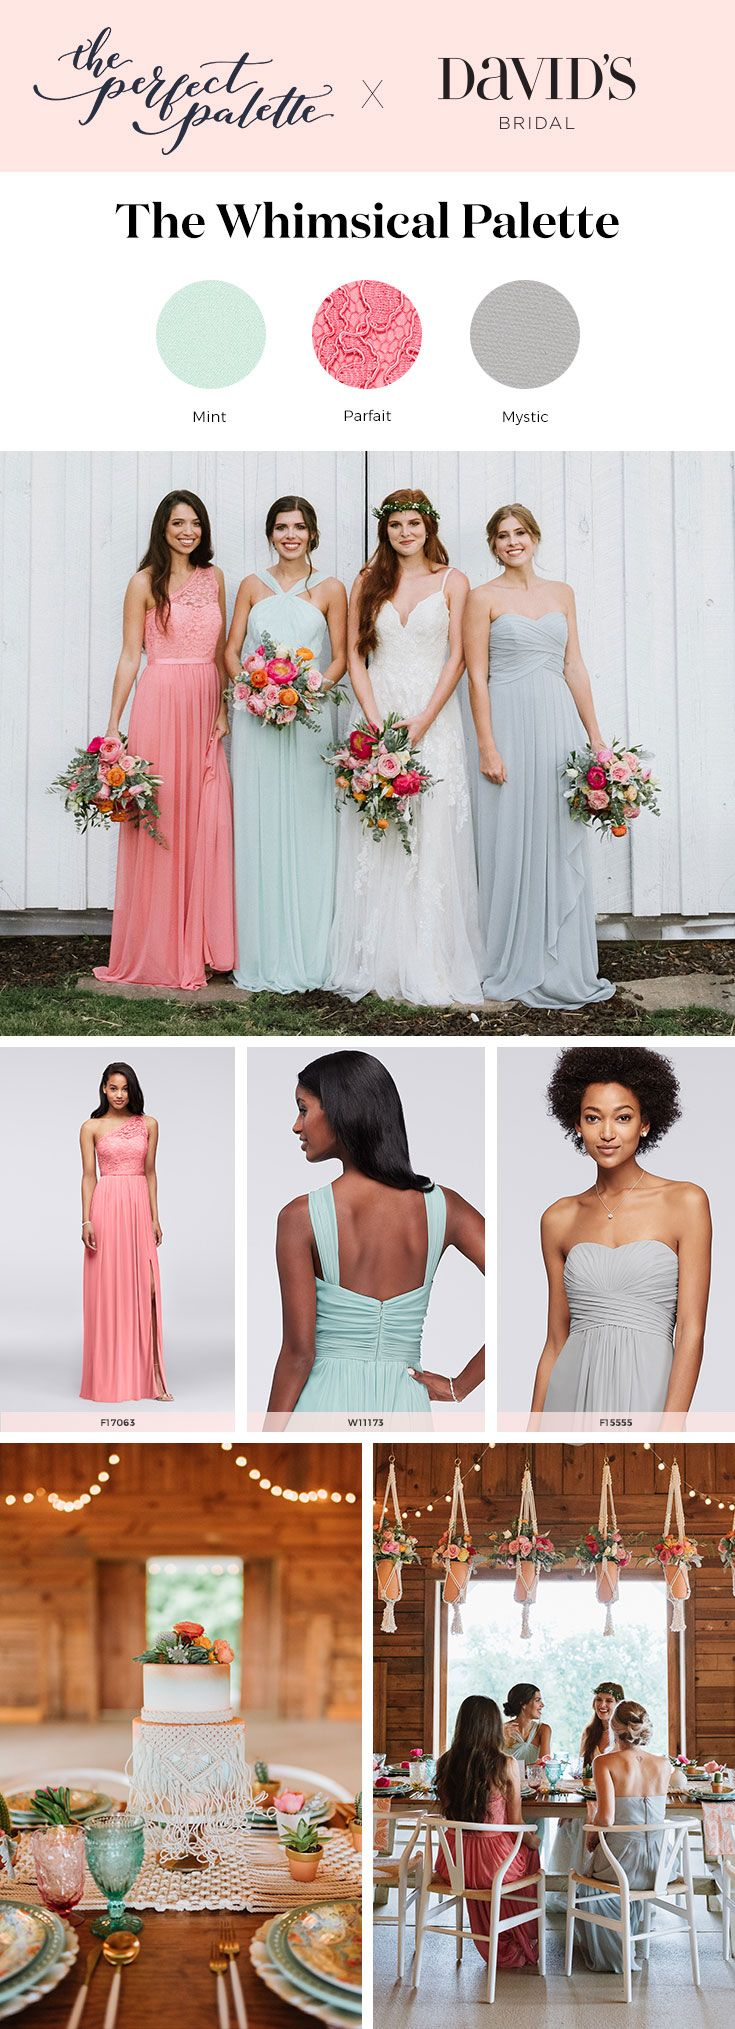 Wedding palette idea: whimsical sorbet shades like mint, mystic, and parfait. At David's Bridal, it's easy to coordinate your whole wedding da...